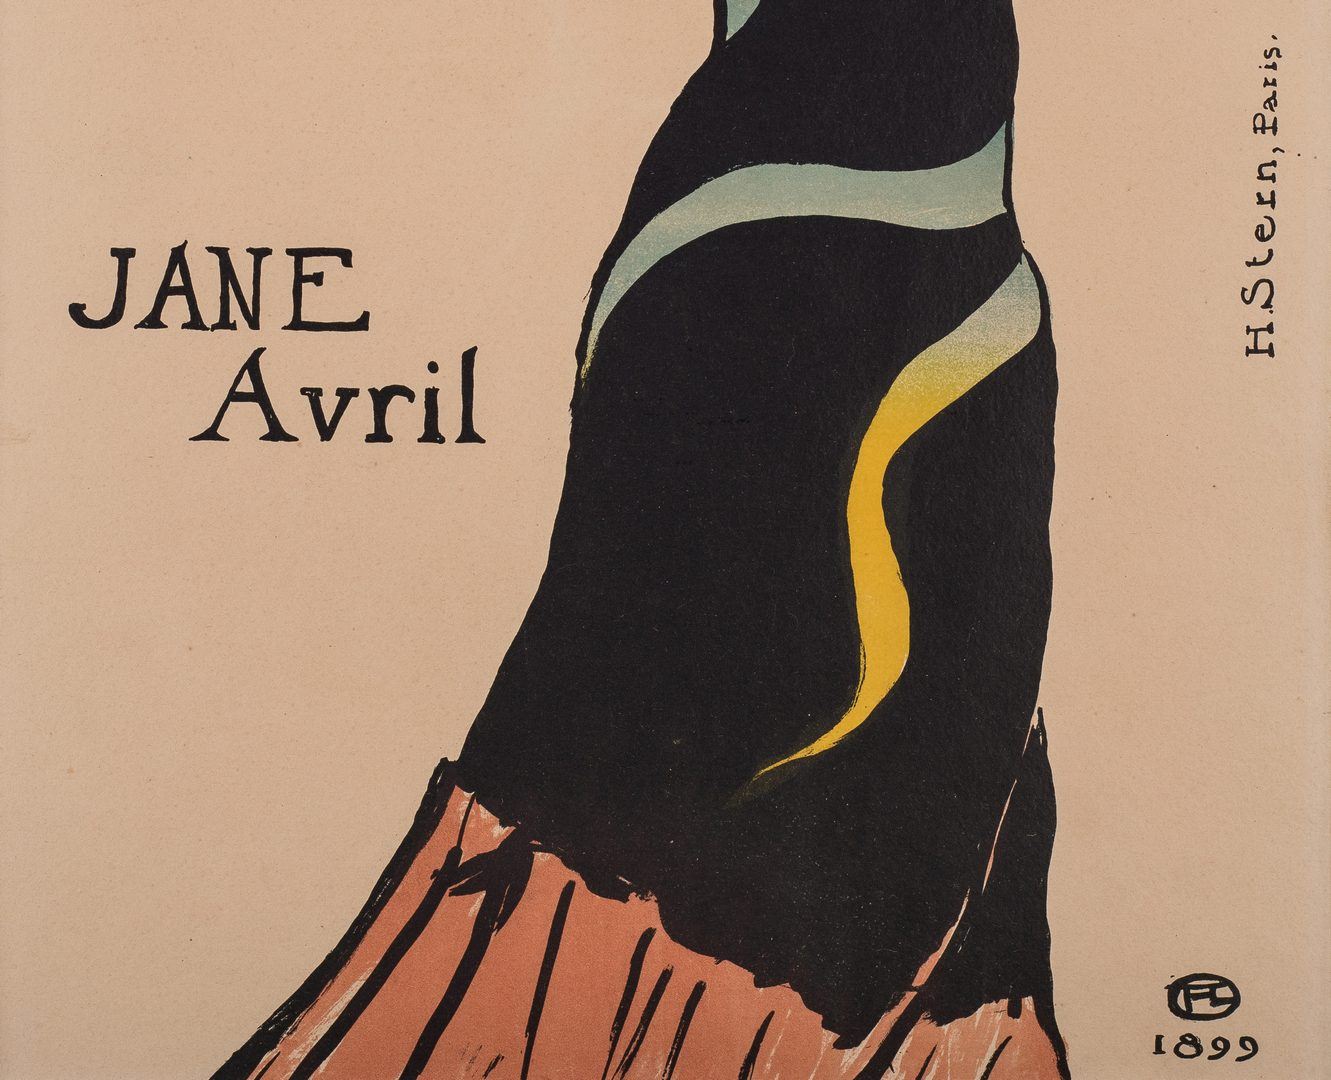 Lot 100: Toulouse Lautrec Lithograph, Jane Avril